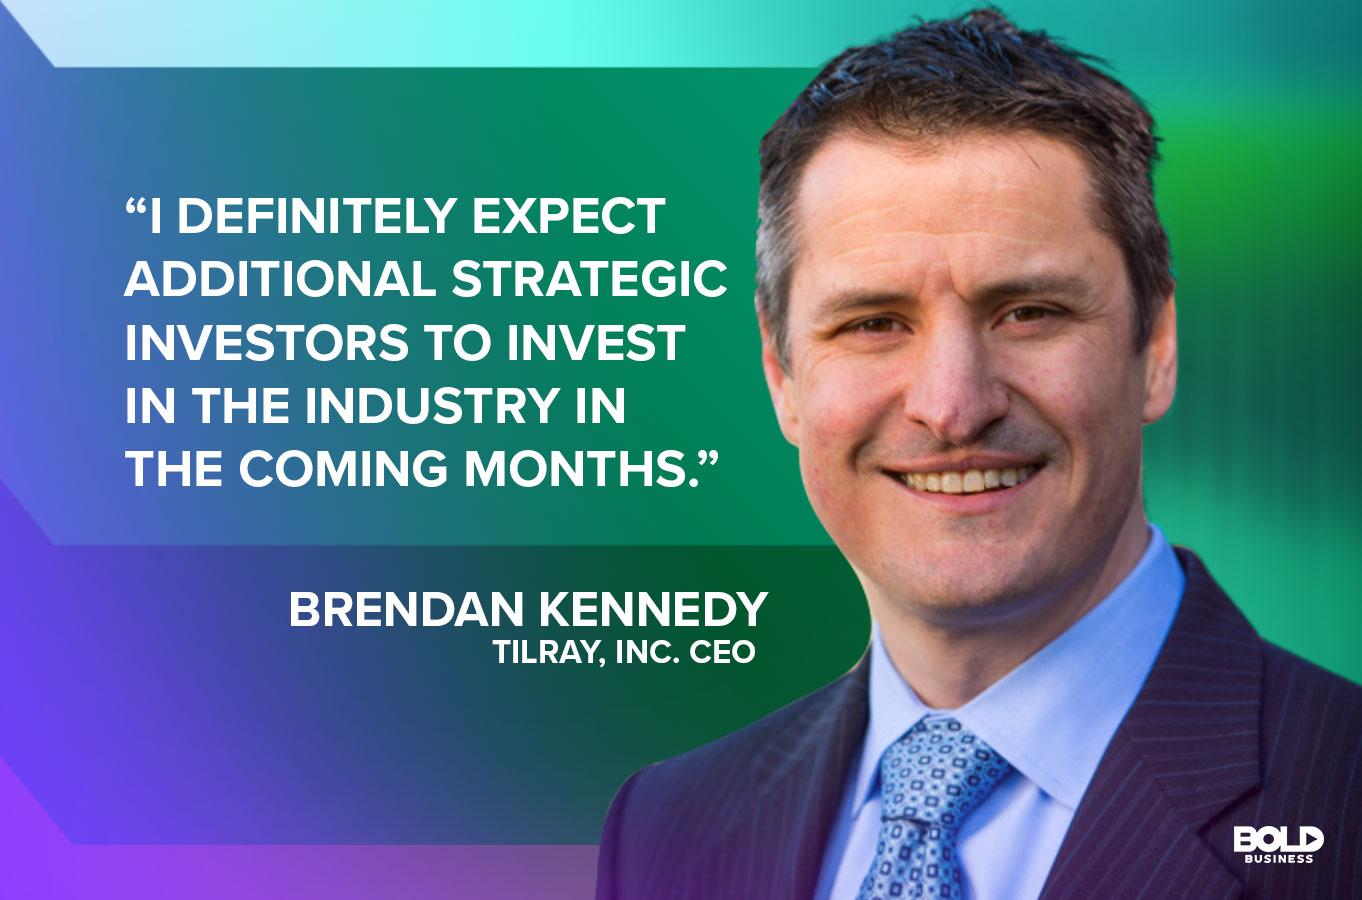 Brendan Kennedy, CEO of one of the largest cannabis companies in Tilray, sees a push into the beverage sector as the future.